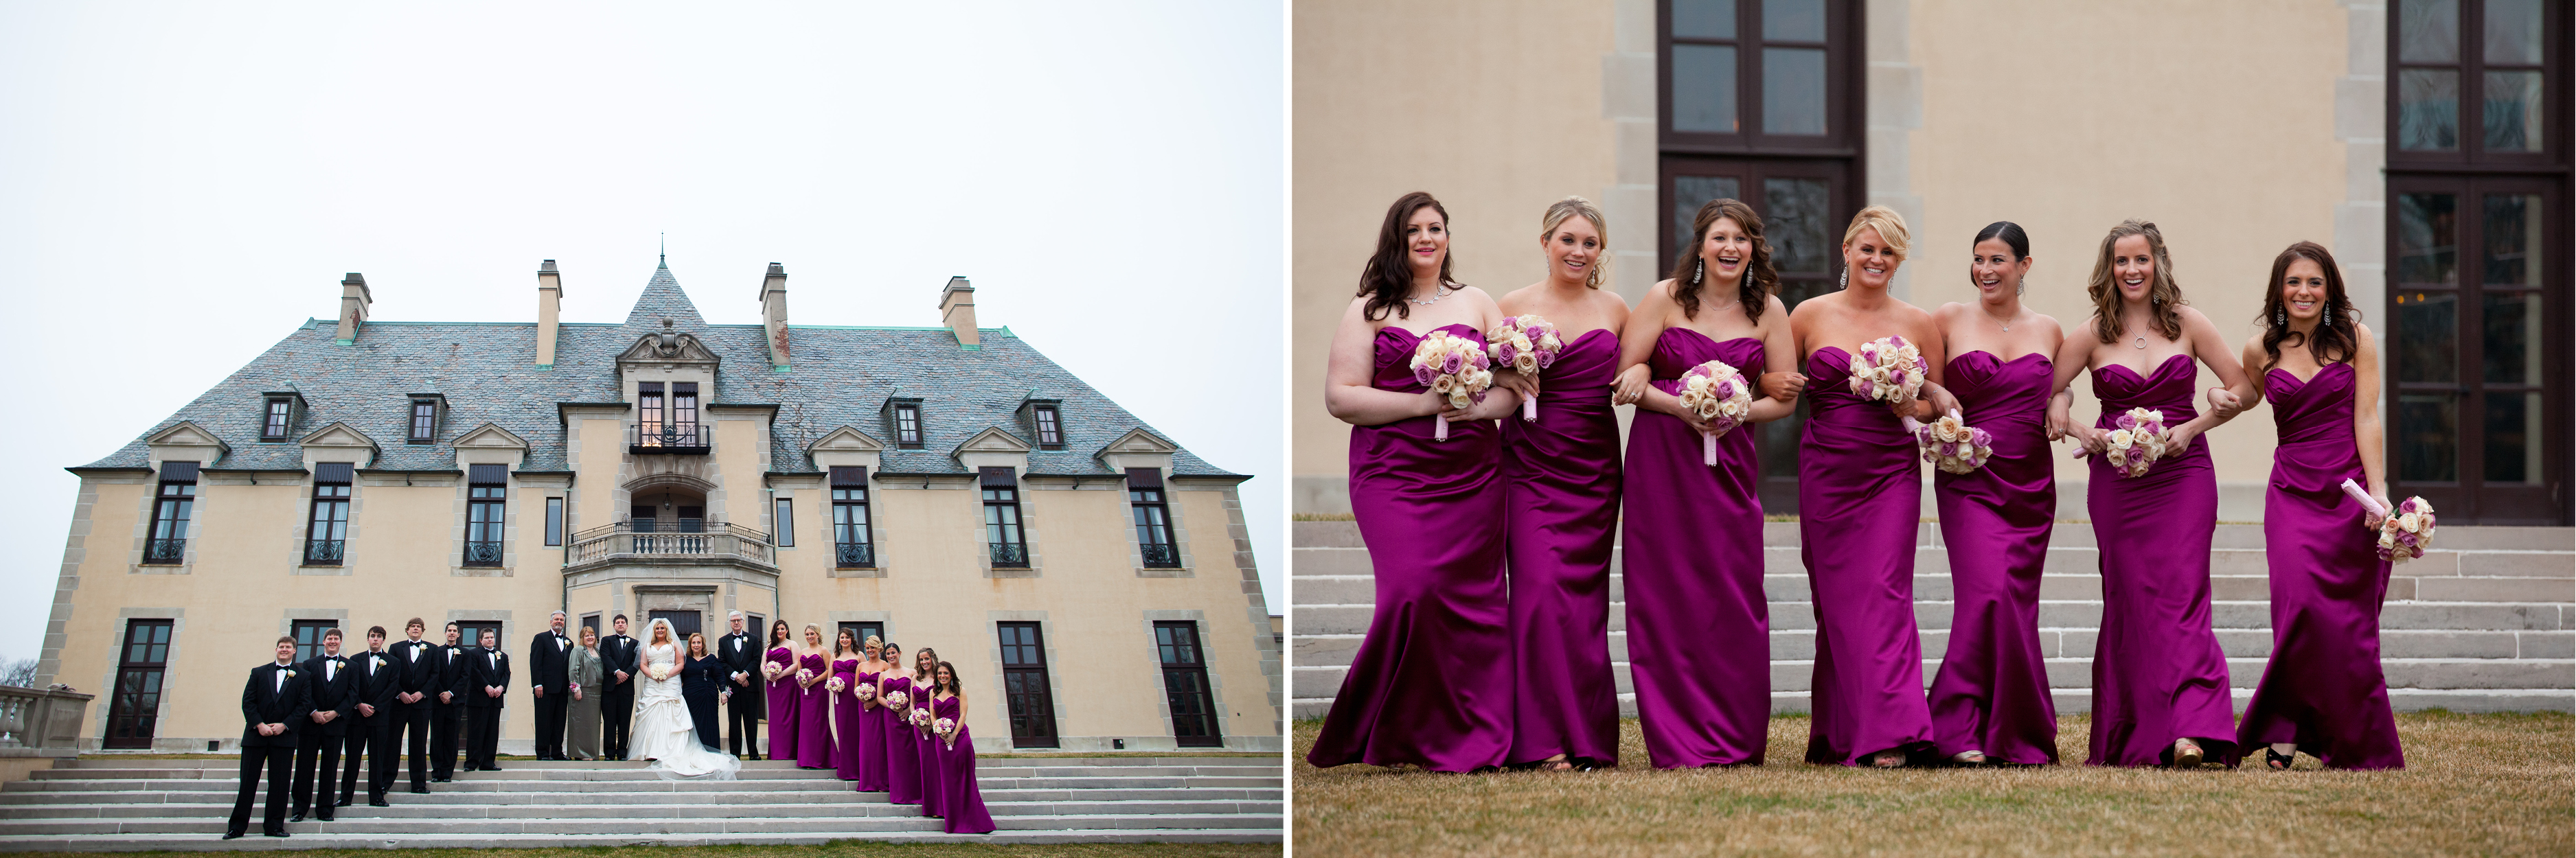 Emma_cleary_photography Oheka Castle27